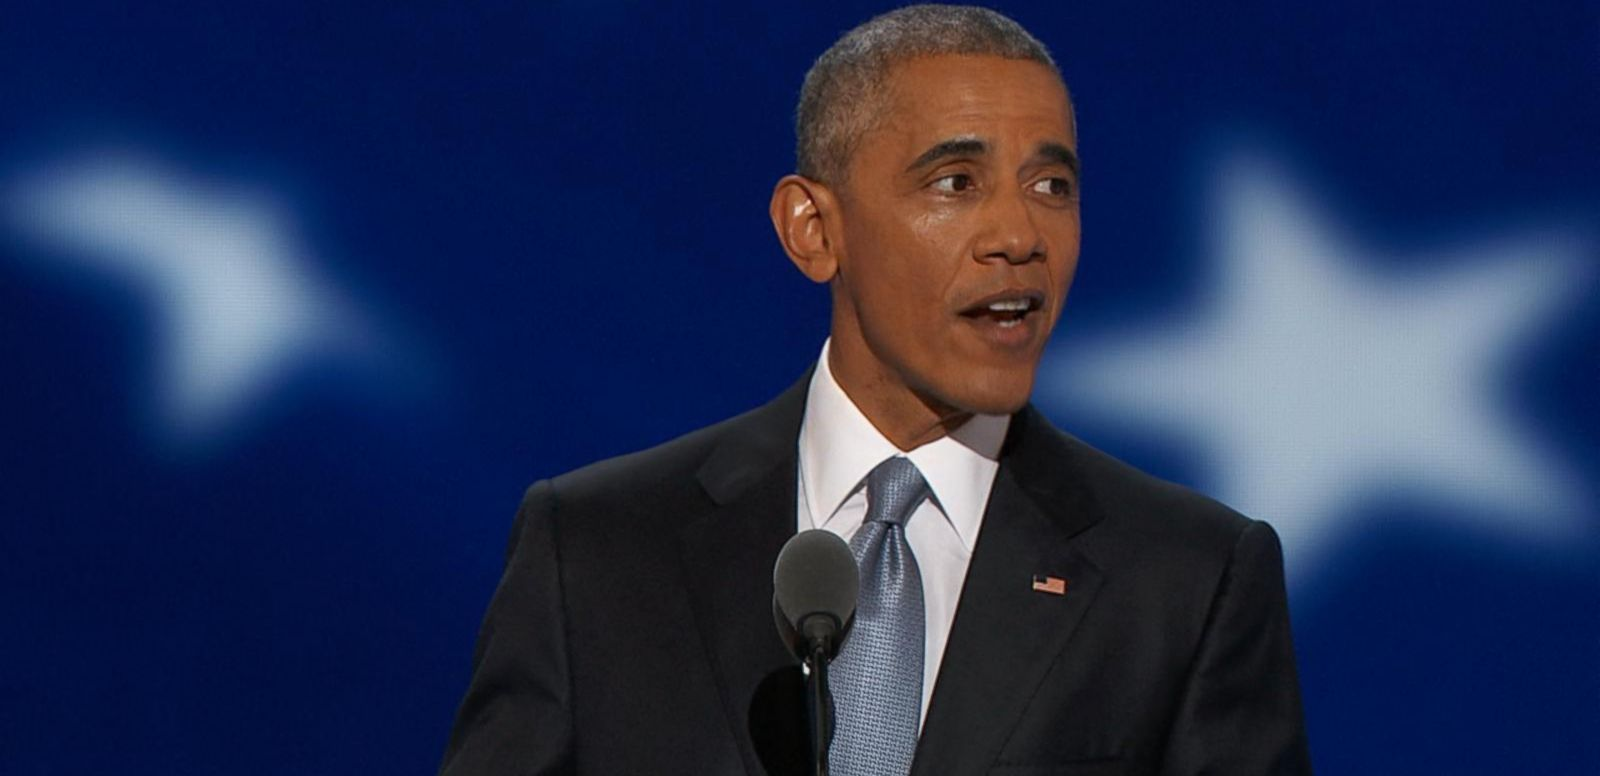 VIDEO: President Obama: Hillary Clinton 'Has Never Forgotten Who She is Fighting For'